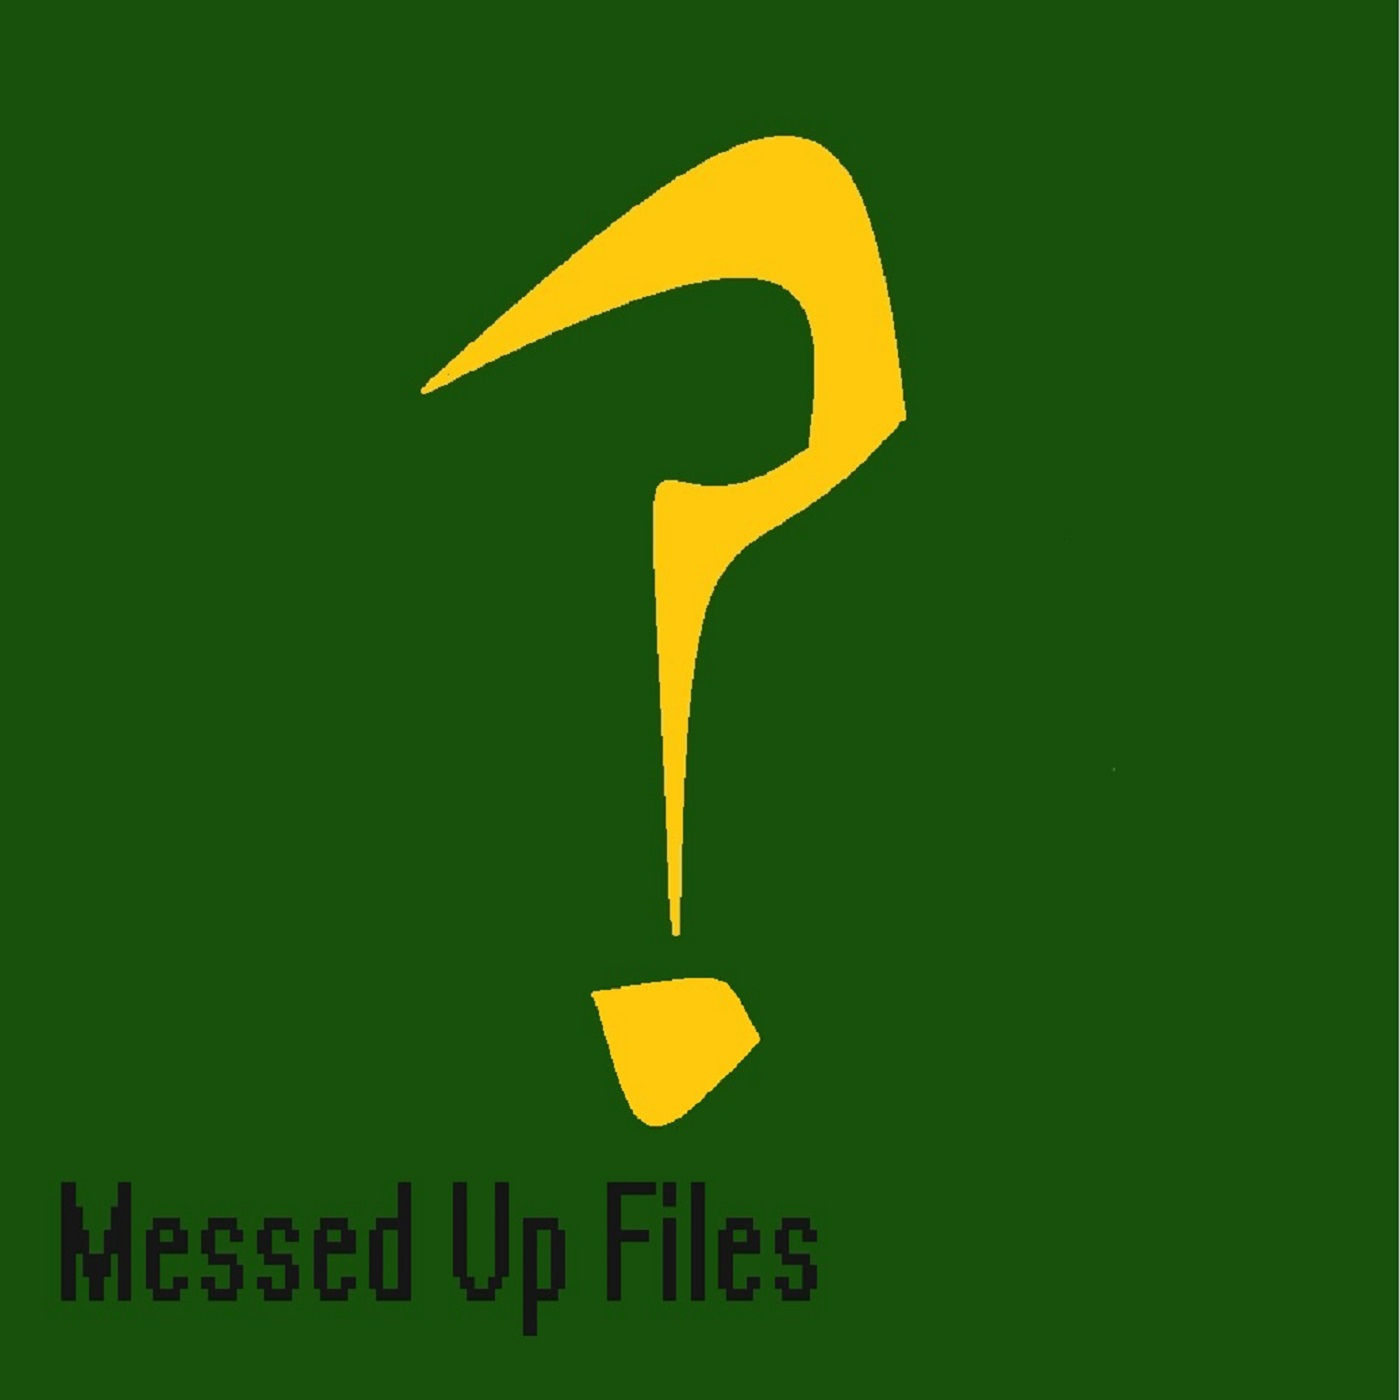 Messed Up Files